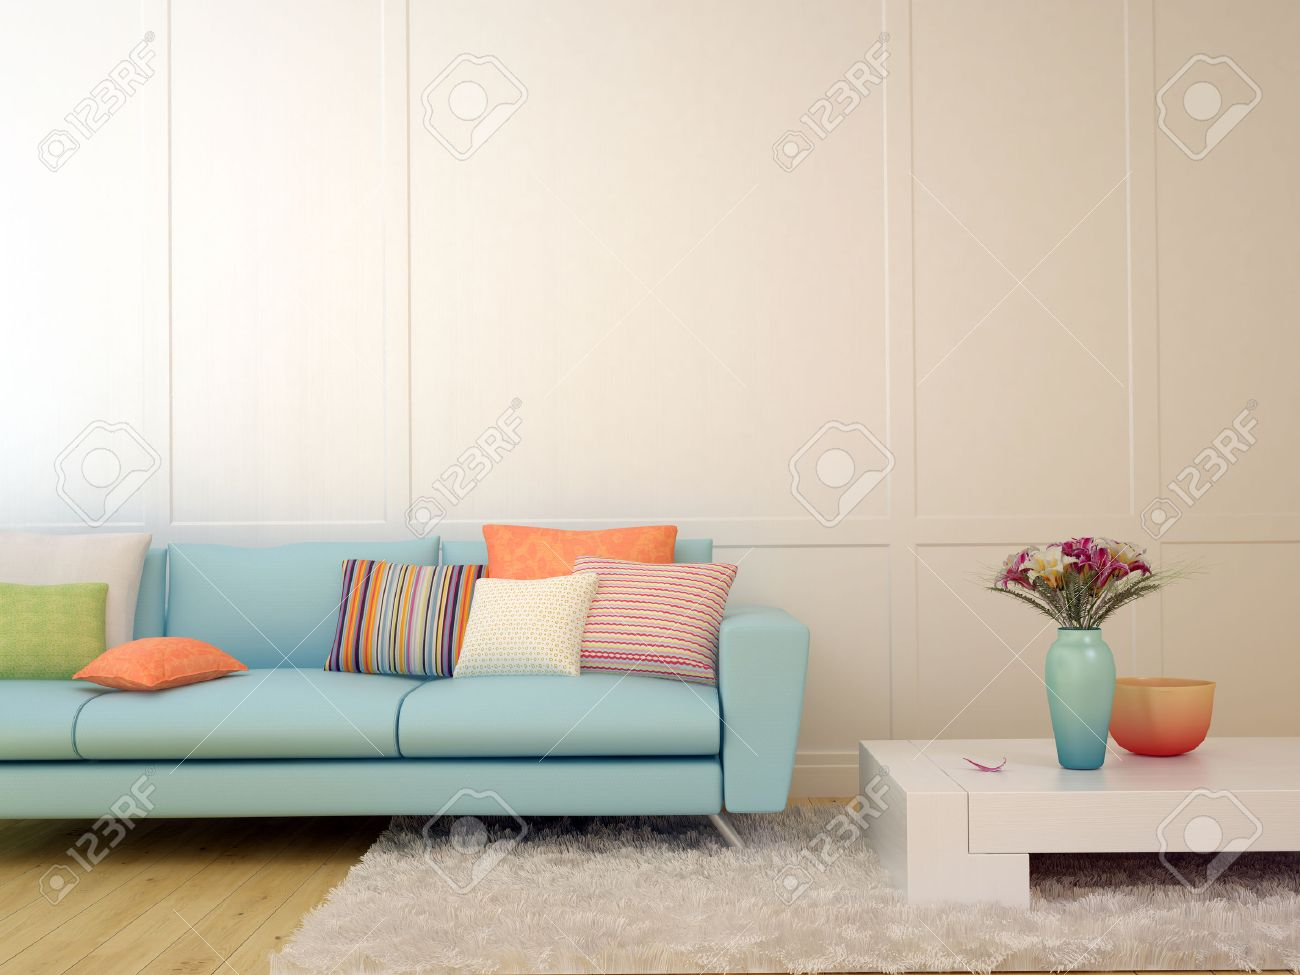 Bright Composition Of A Light Blue Sofa With Cushions And A.. Stock ...